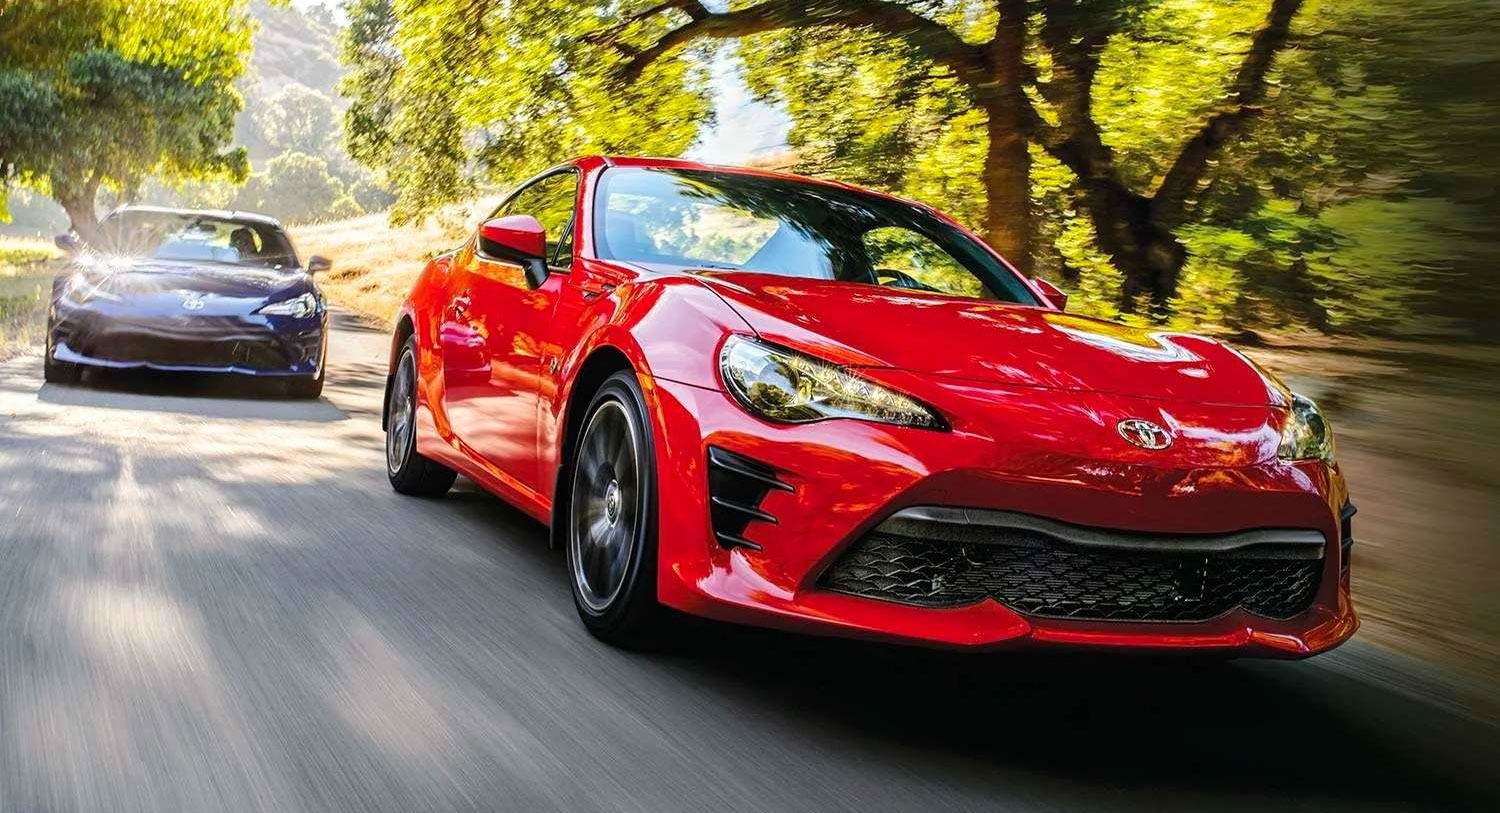 20toyota 86 Feature001